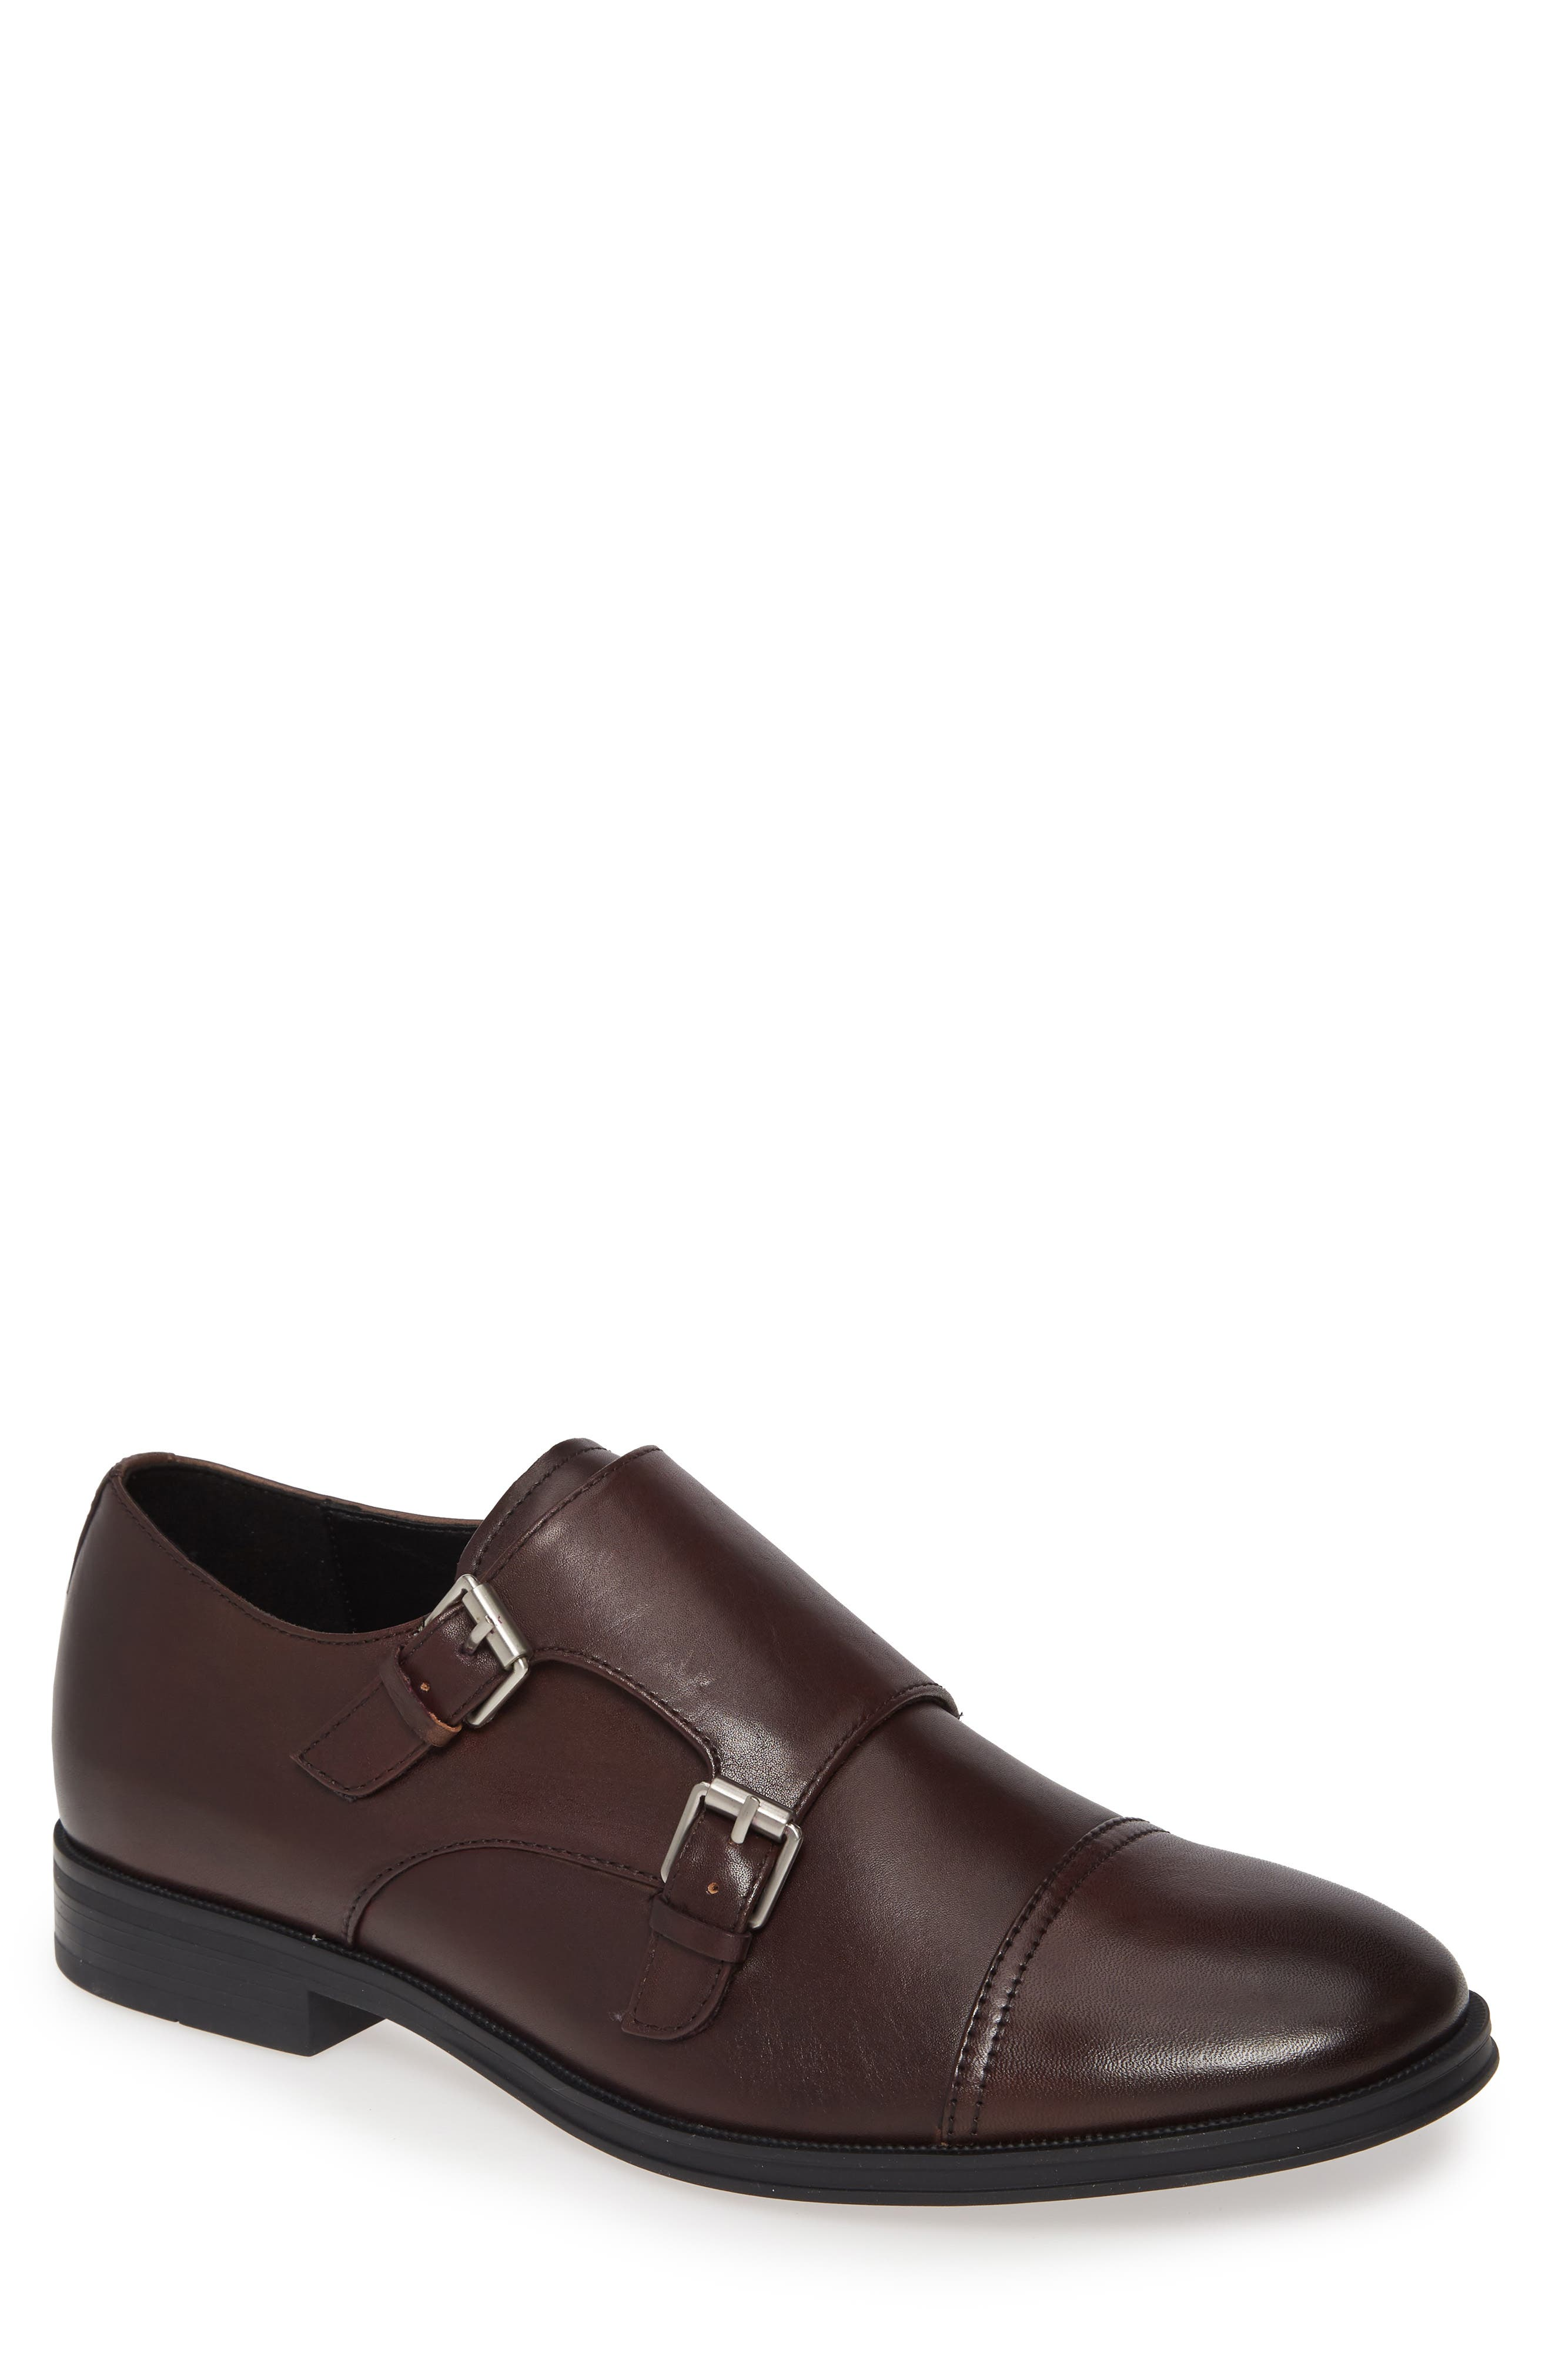 Image of Calvin Klein Winthrope Double Monk Strap Shoe